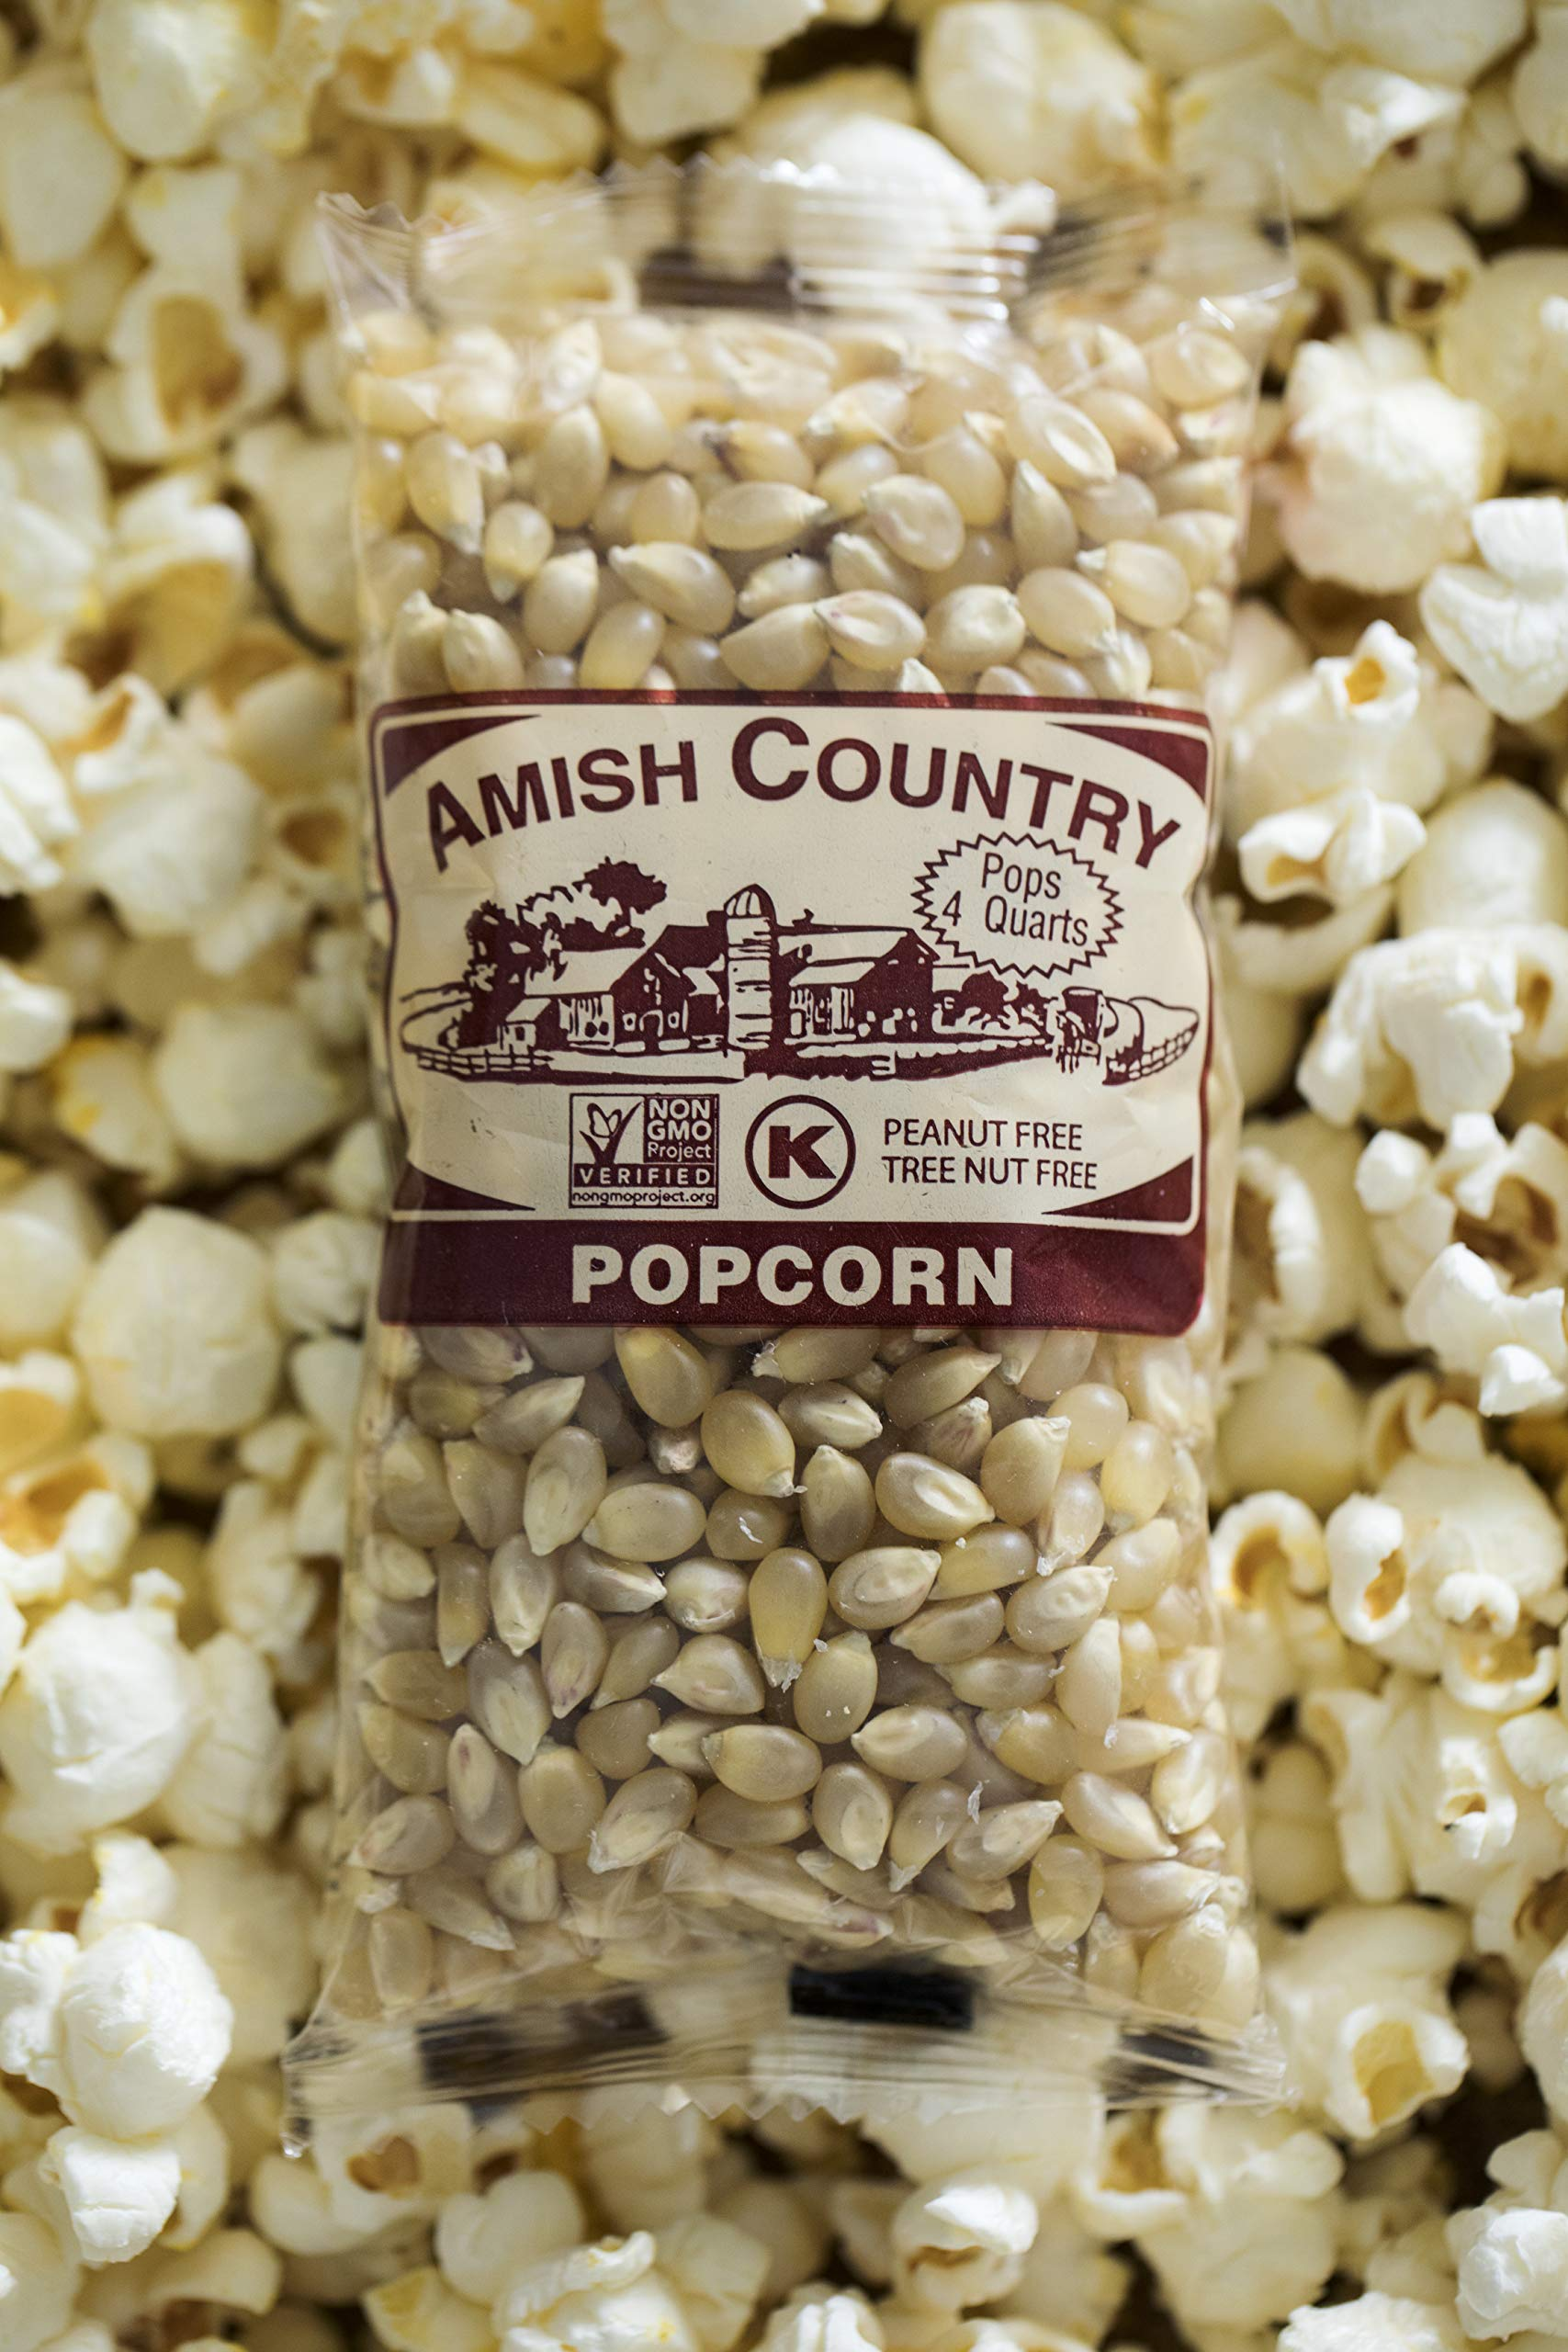 Amish Country Popcorn - Medium White Popcorn (4 Ounce - 24 Pack) Bags - Old Fashioned, Non GMO, and Gluten Free - with Recipe Guide by Amish Country Popcorn (Image #5)